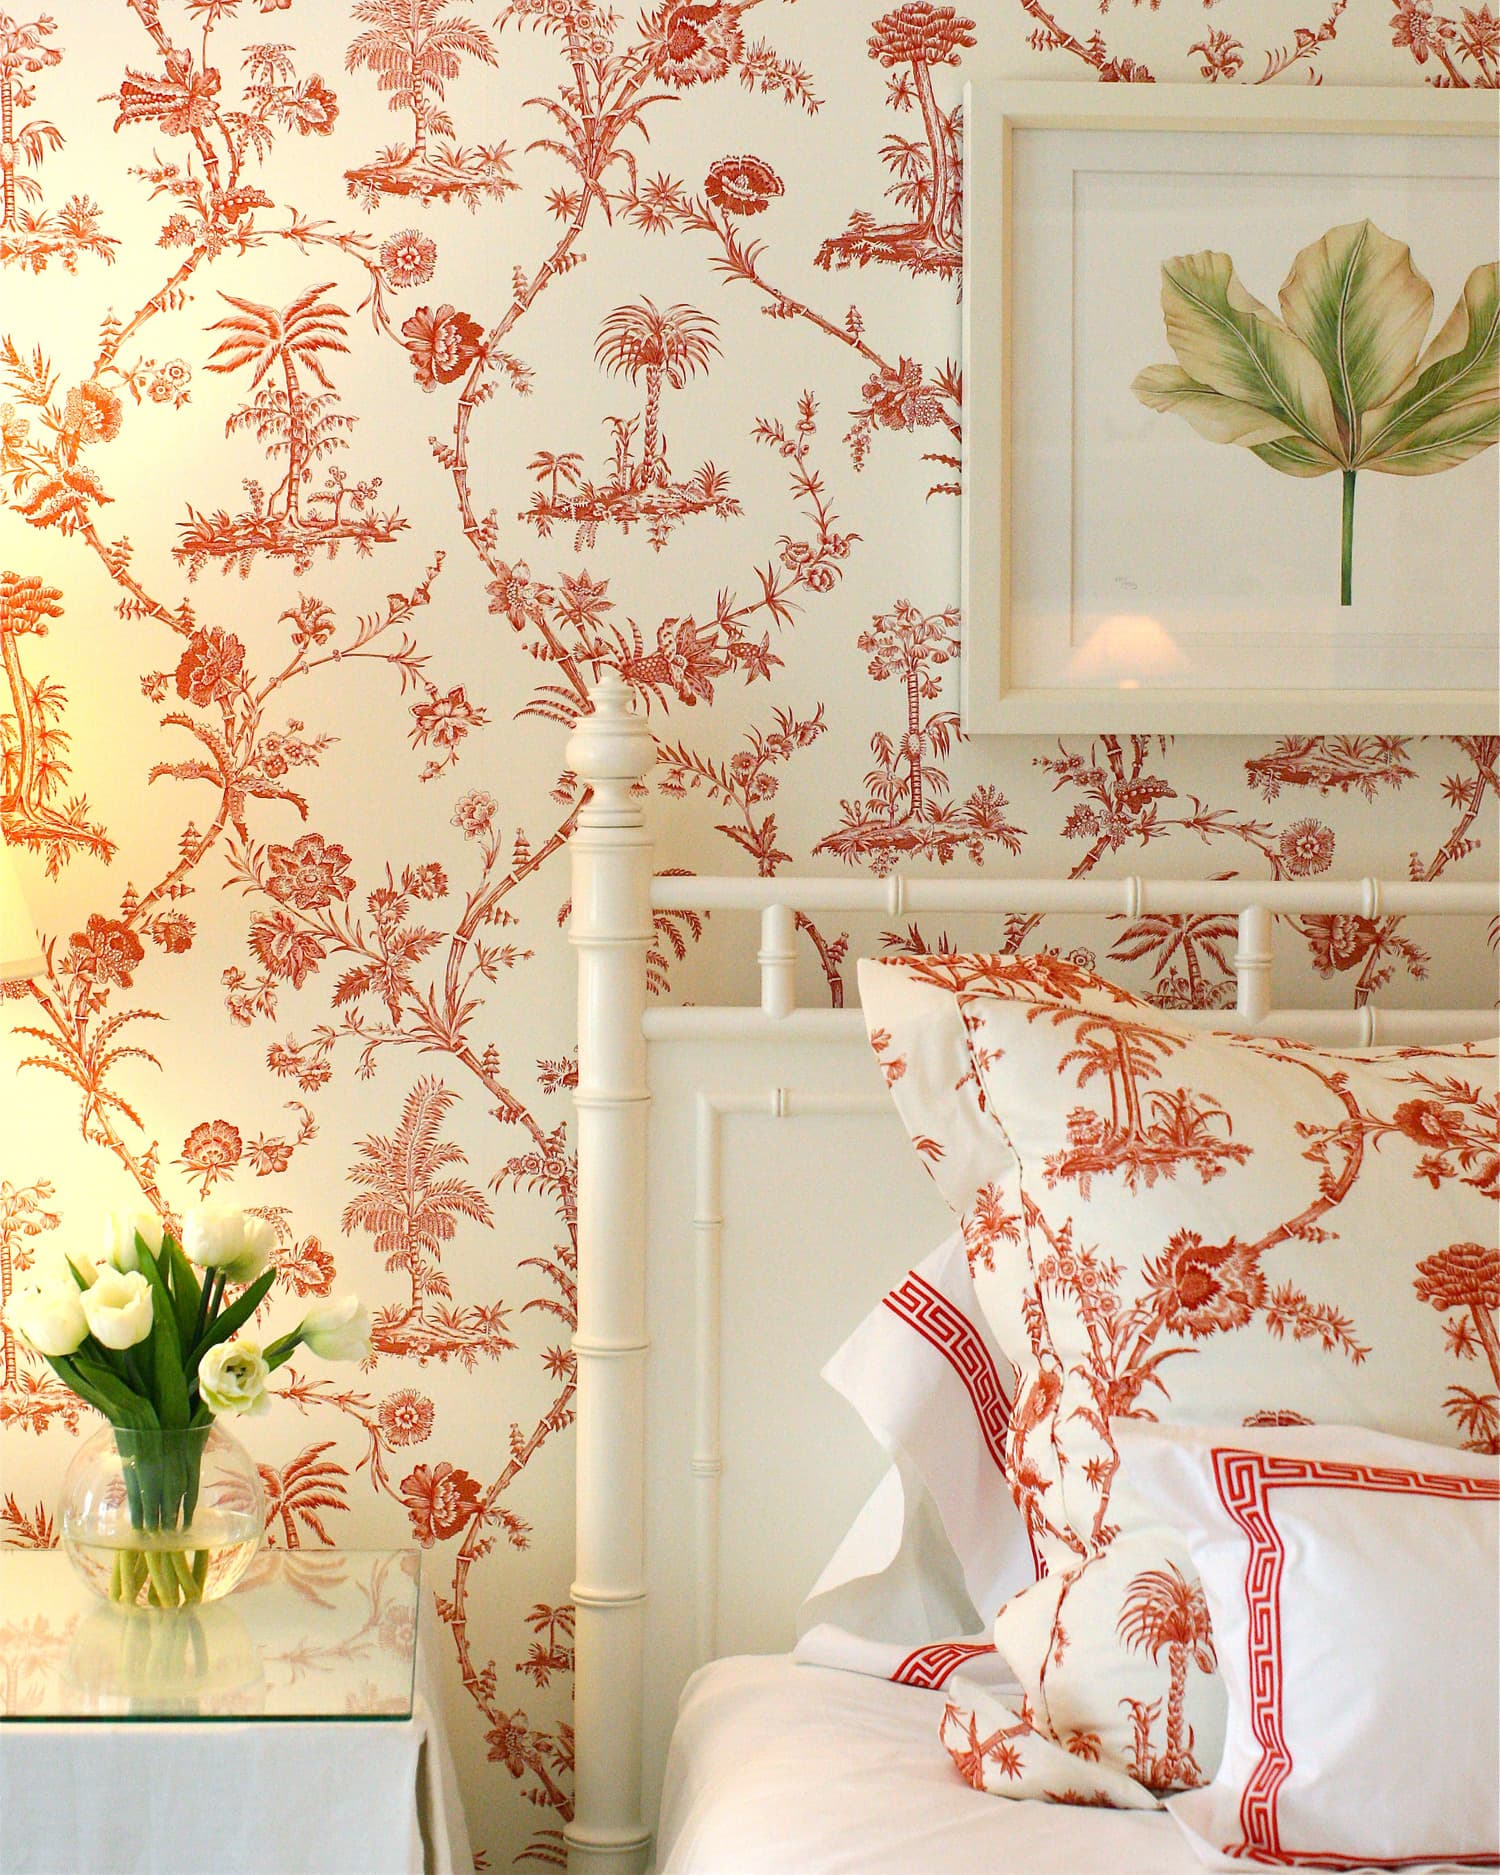 this is a red floral motif wallpaper in a bedroom with white elements